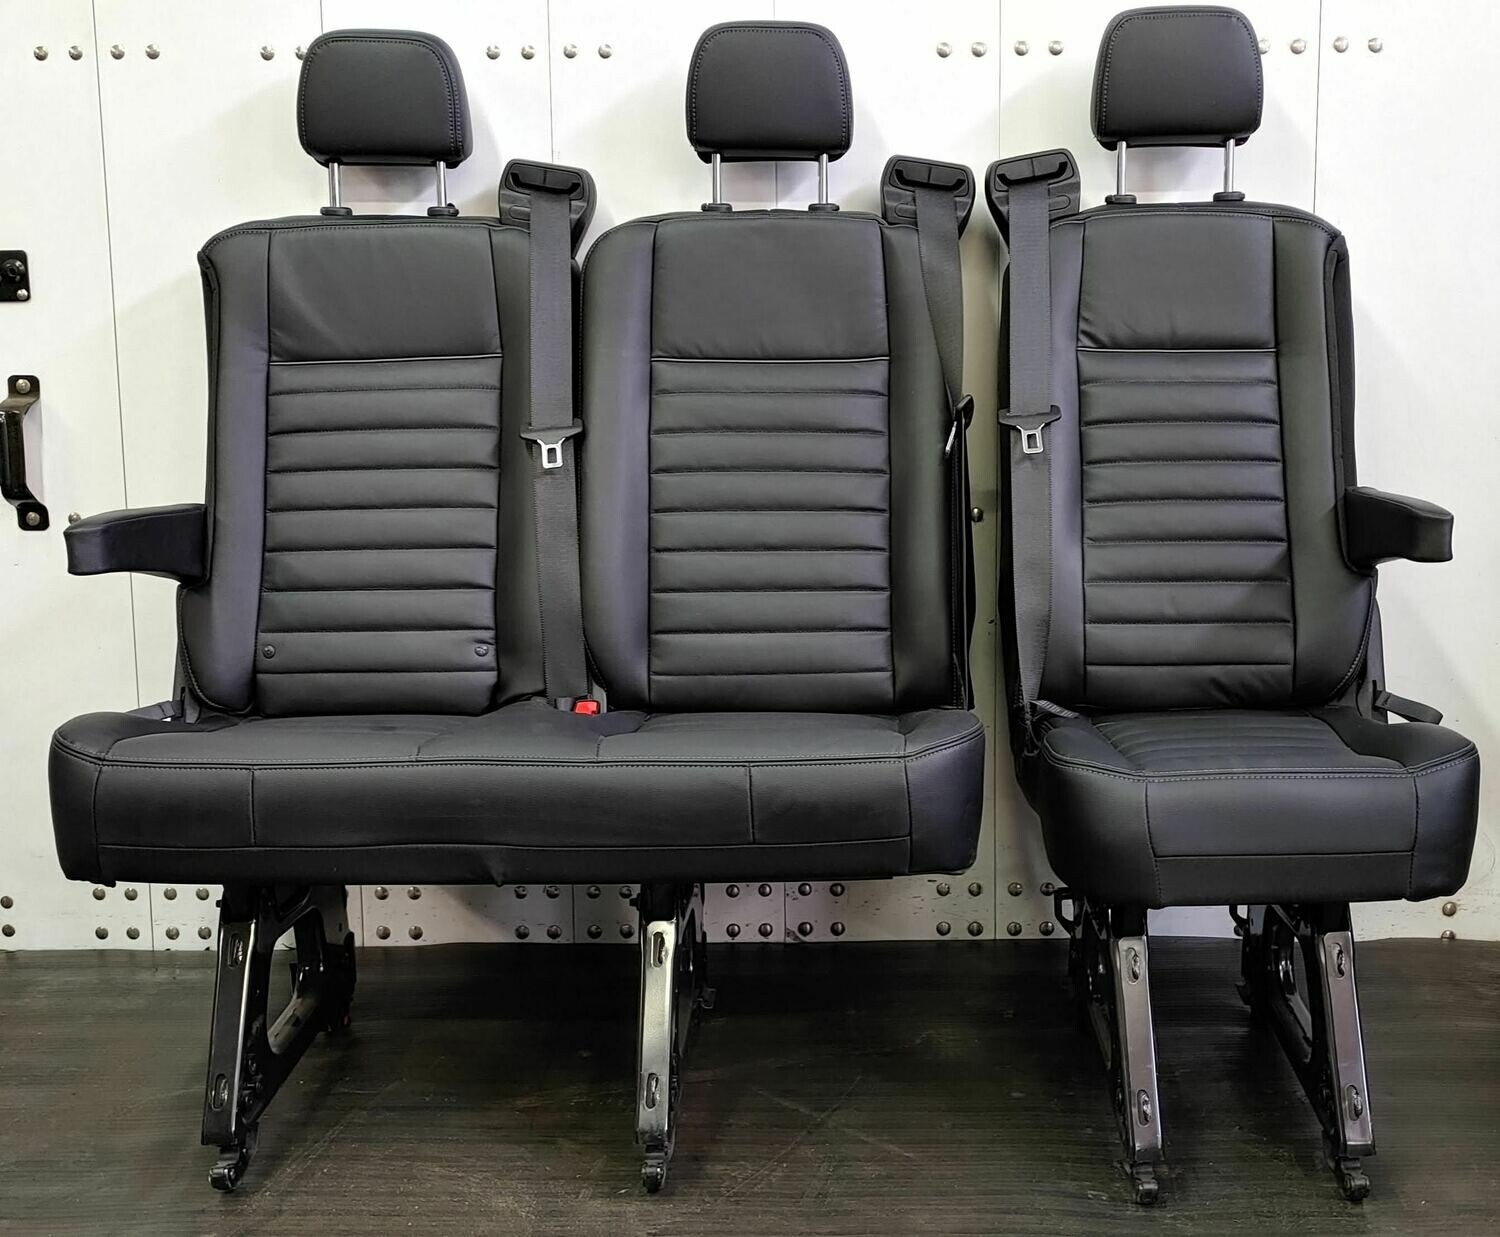 3 Passenger Leather Bench Seat -  Removable